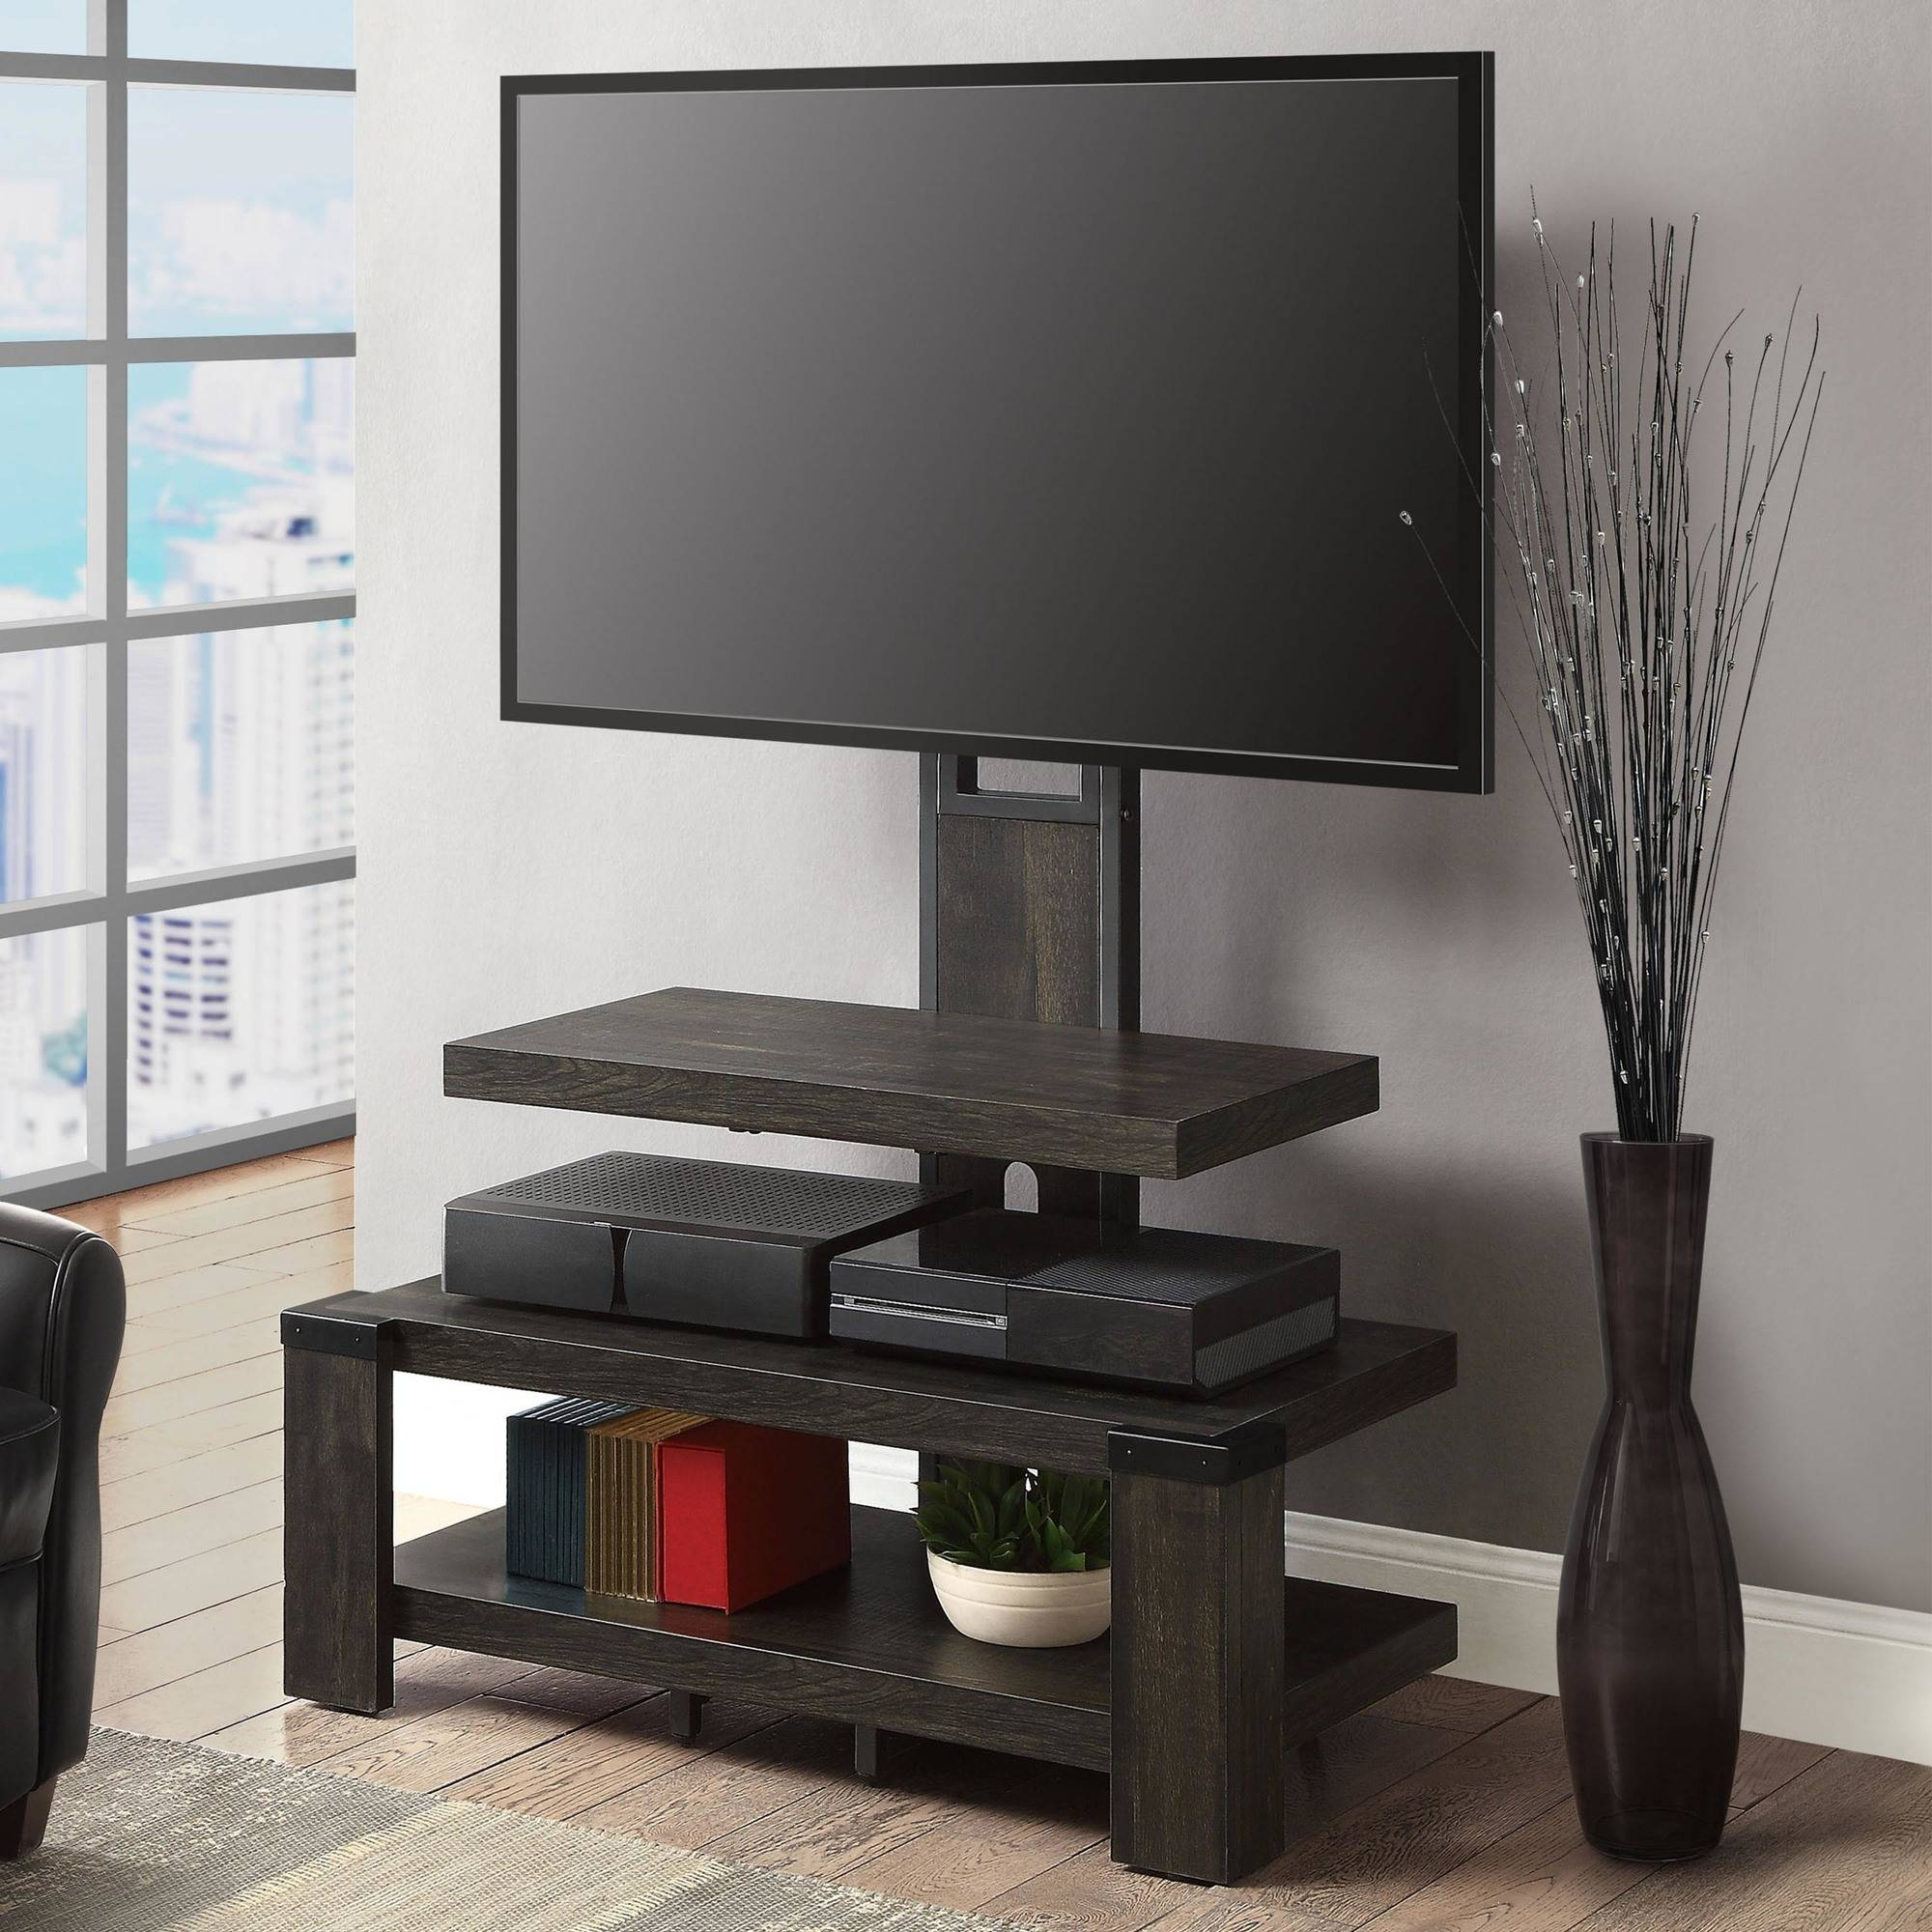 Tv Stand W Floater Mount 3 Shelves For Tvs Up To 55 Weathered Dark